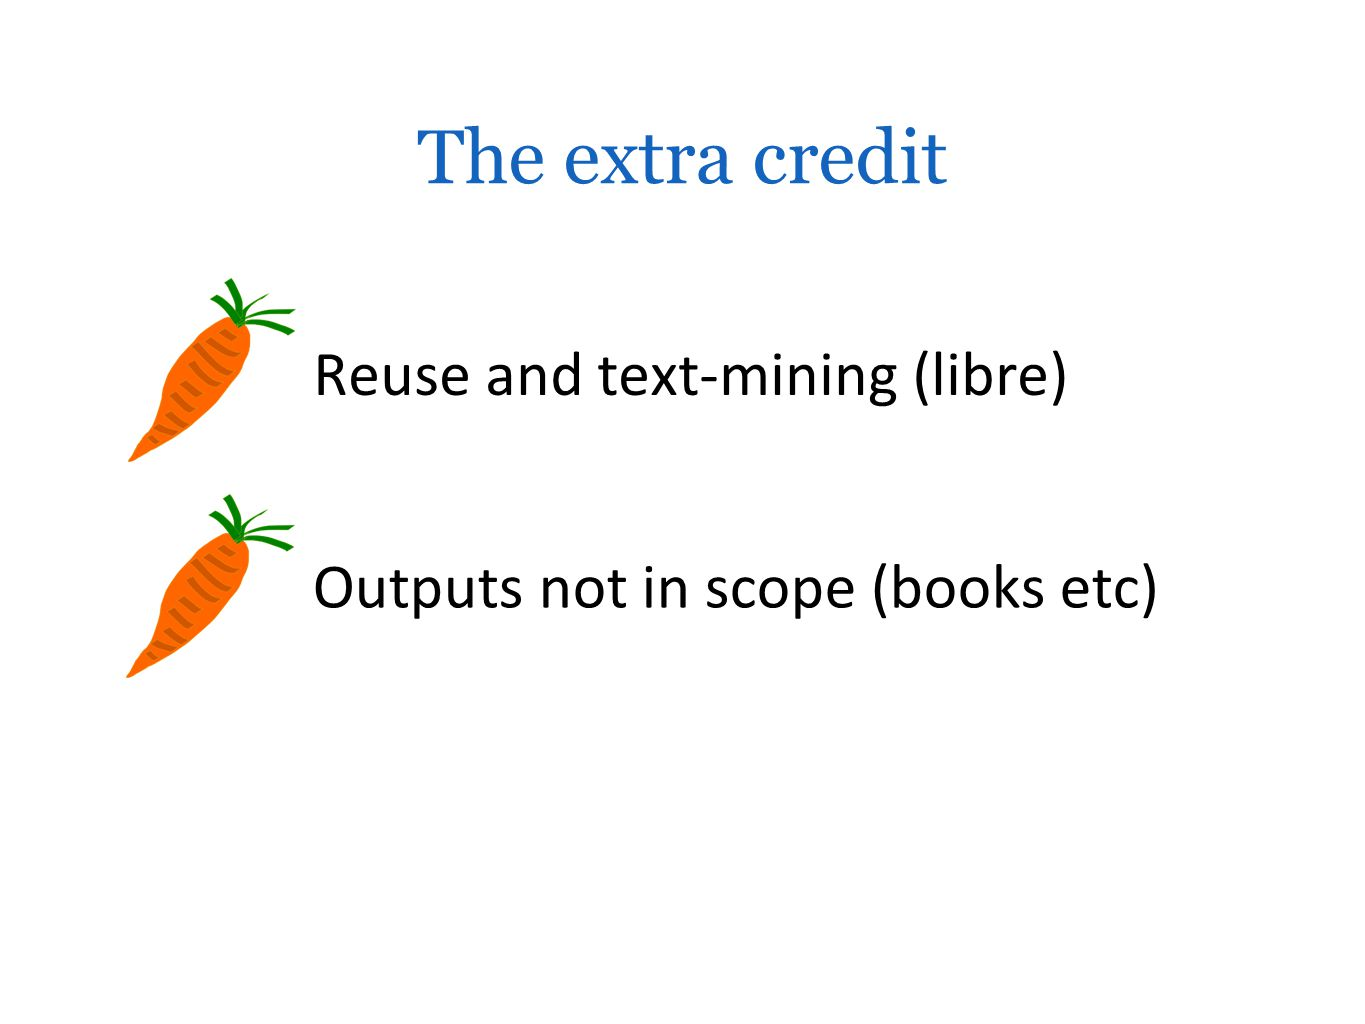 Reuse and text-mining (libre) Outputs not in scope (books etc) The extra credit